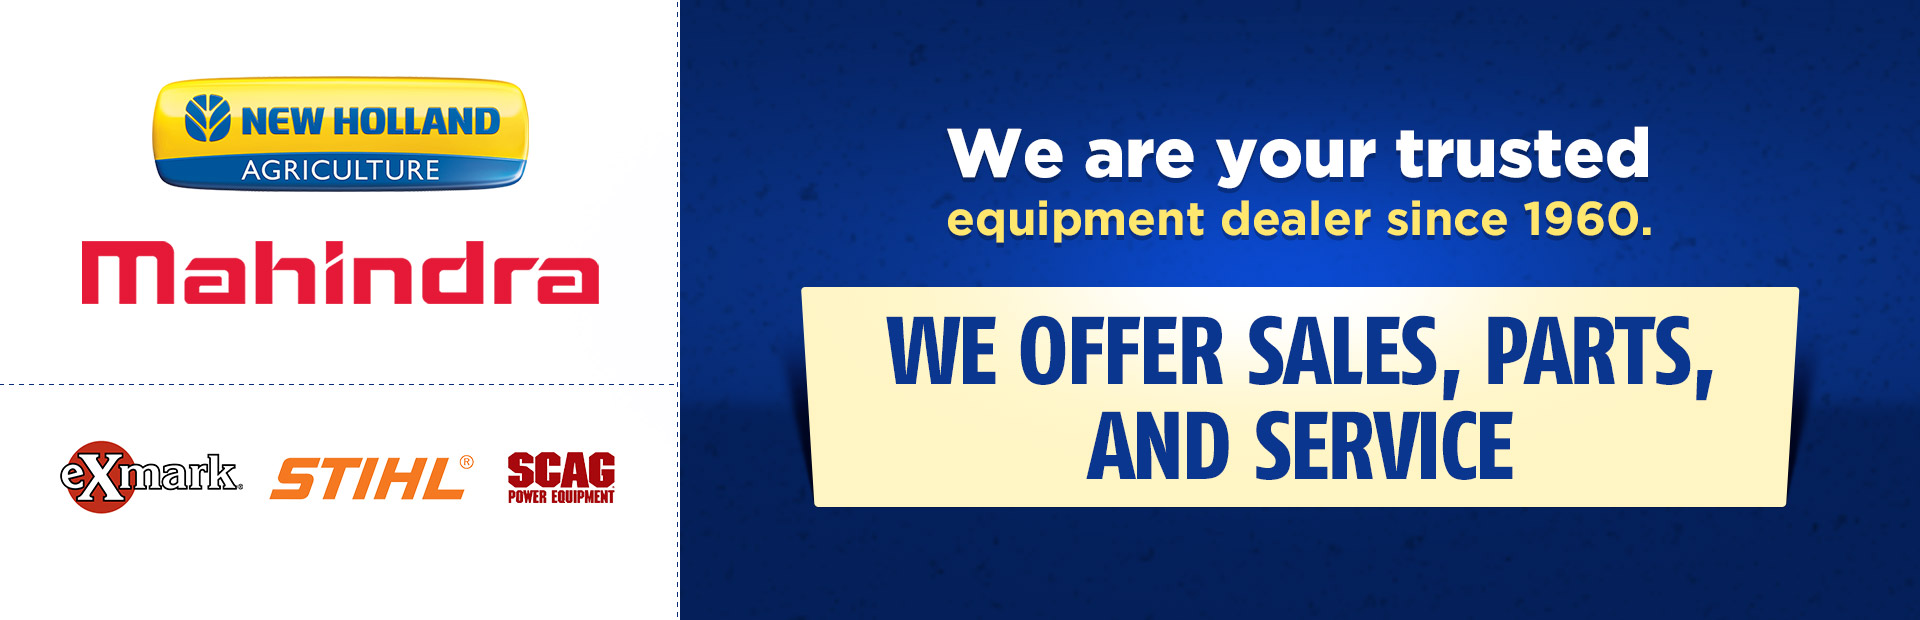 We are your trusted equipment dealer since 1960. We offer sales, parts, and service.